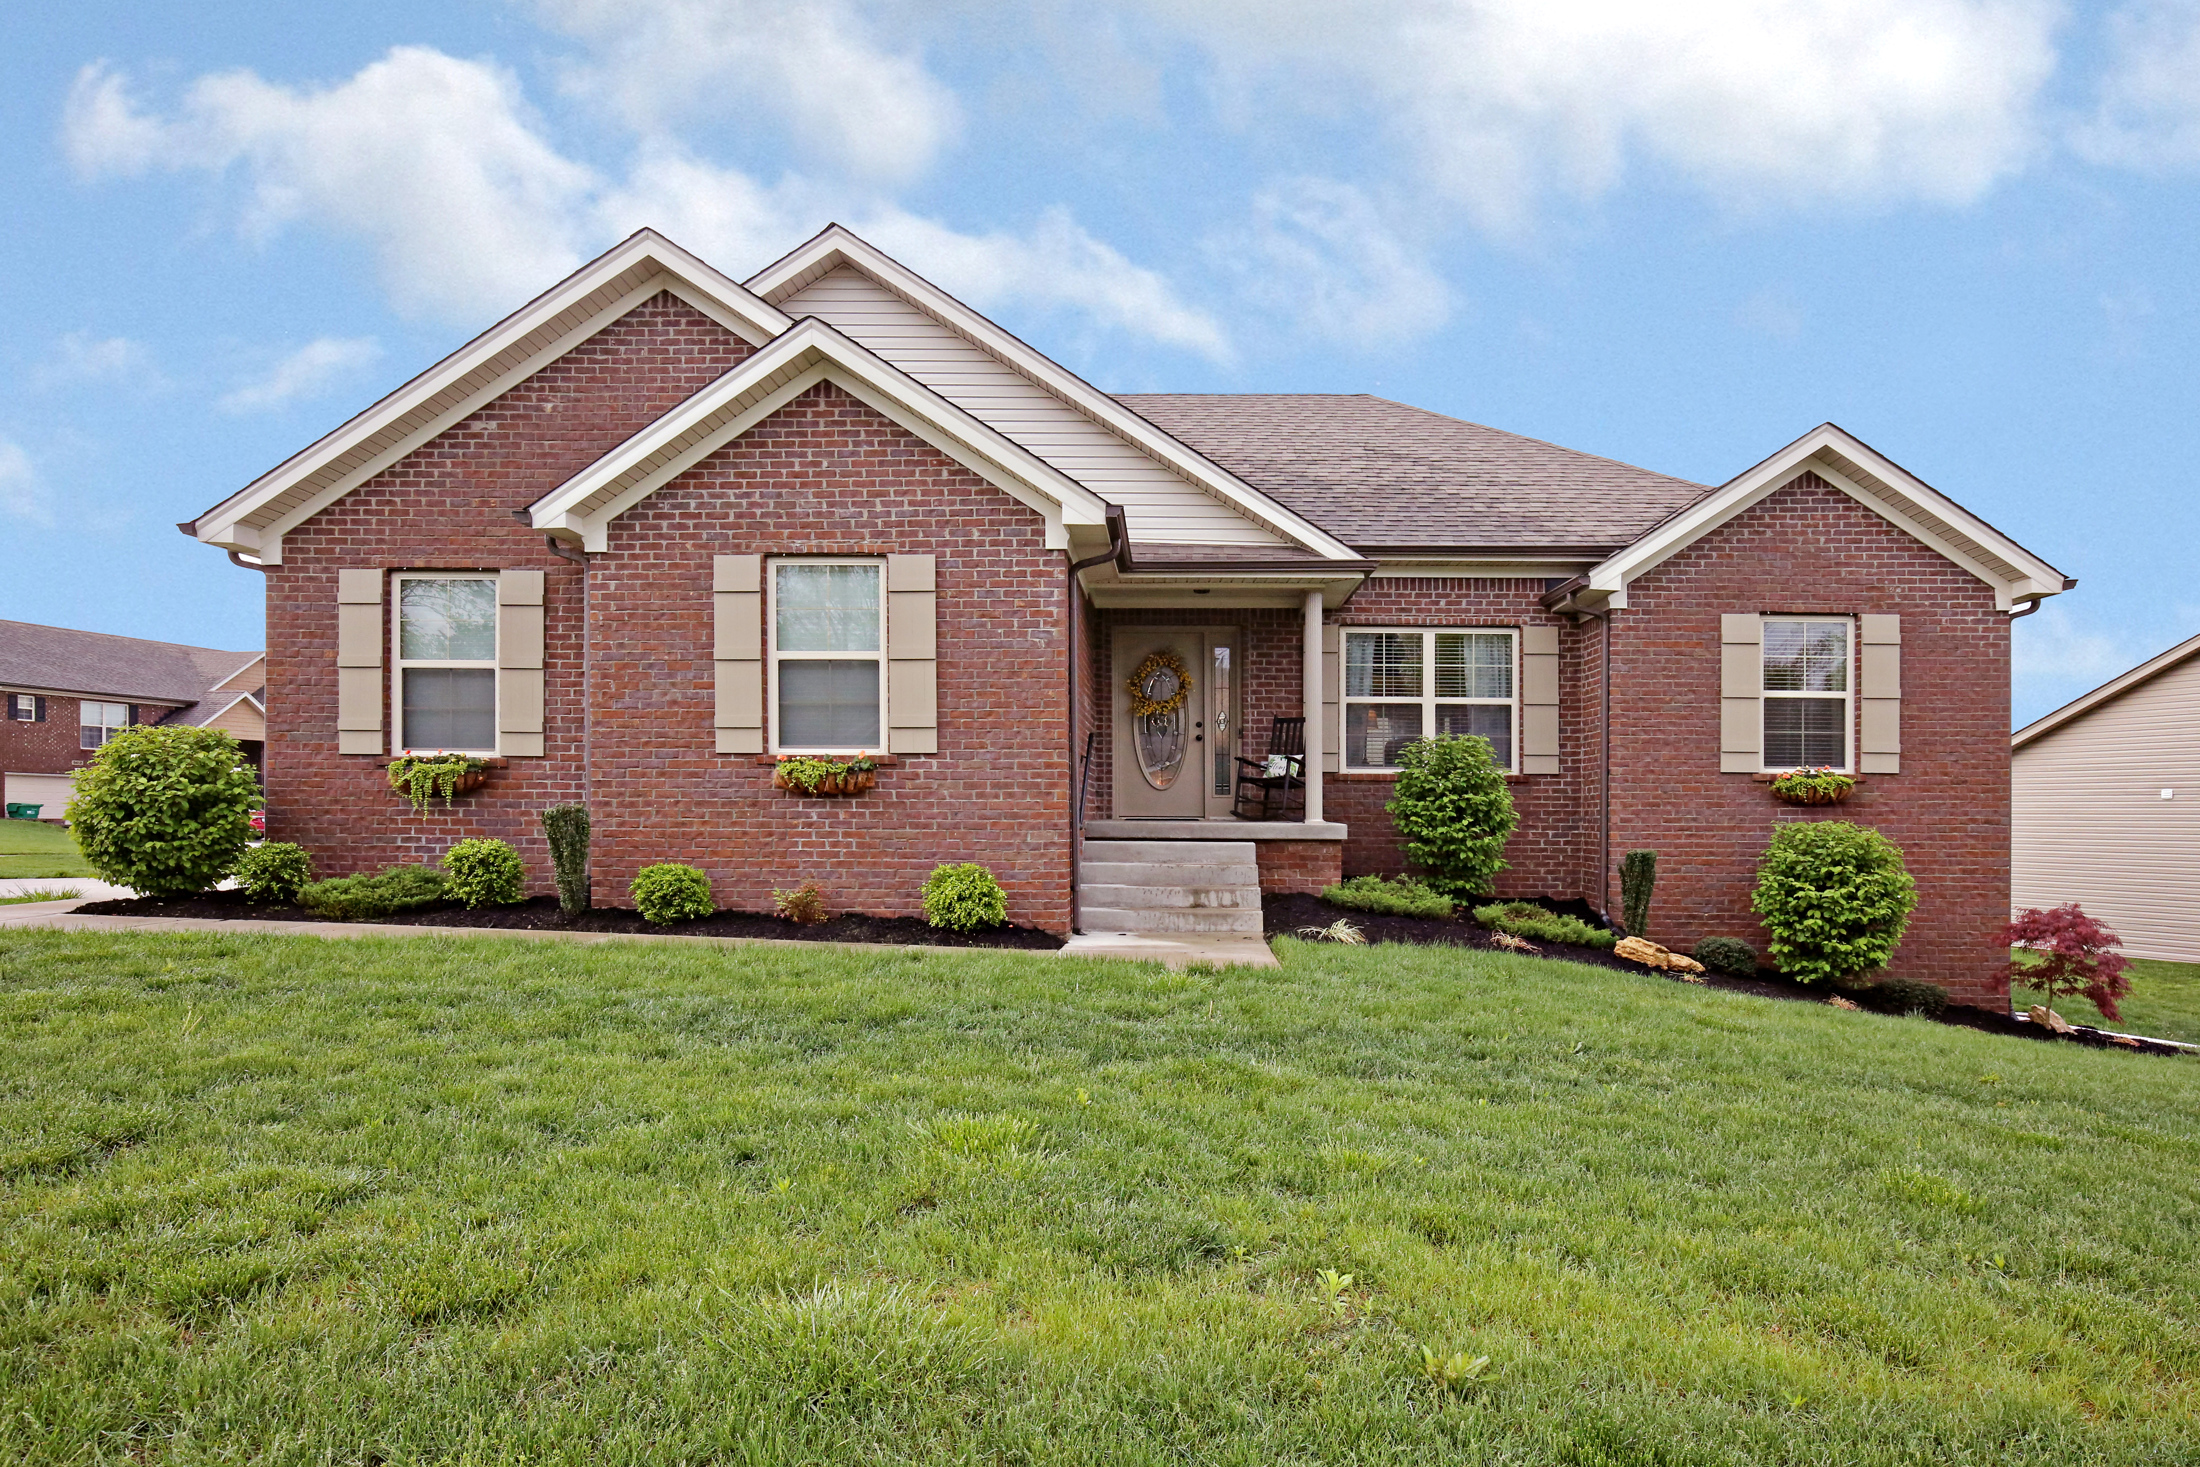 9409 Mossy Creek Way, Louisville, KY 40299